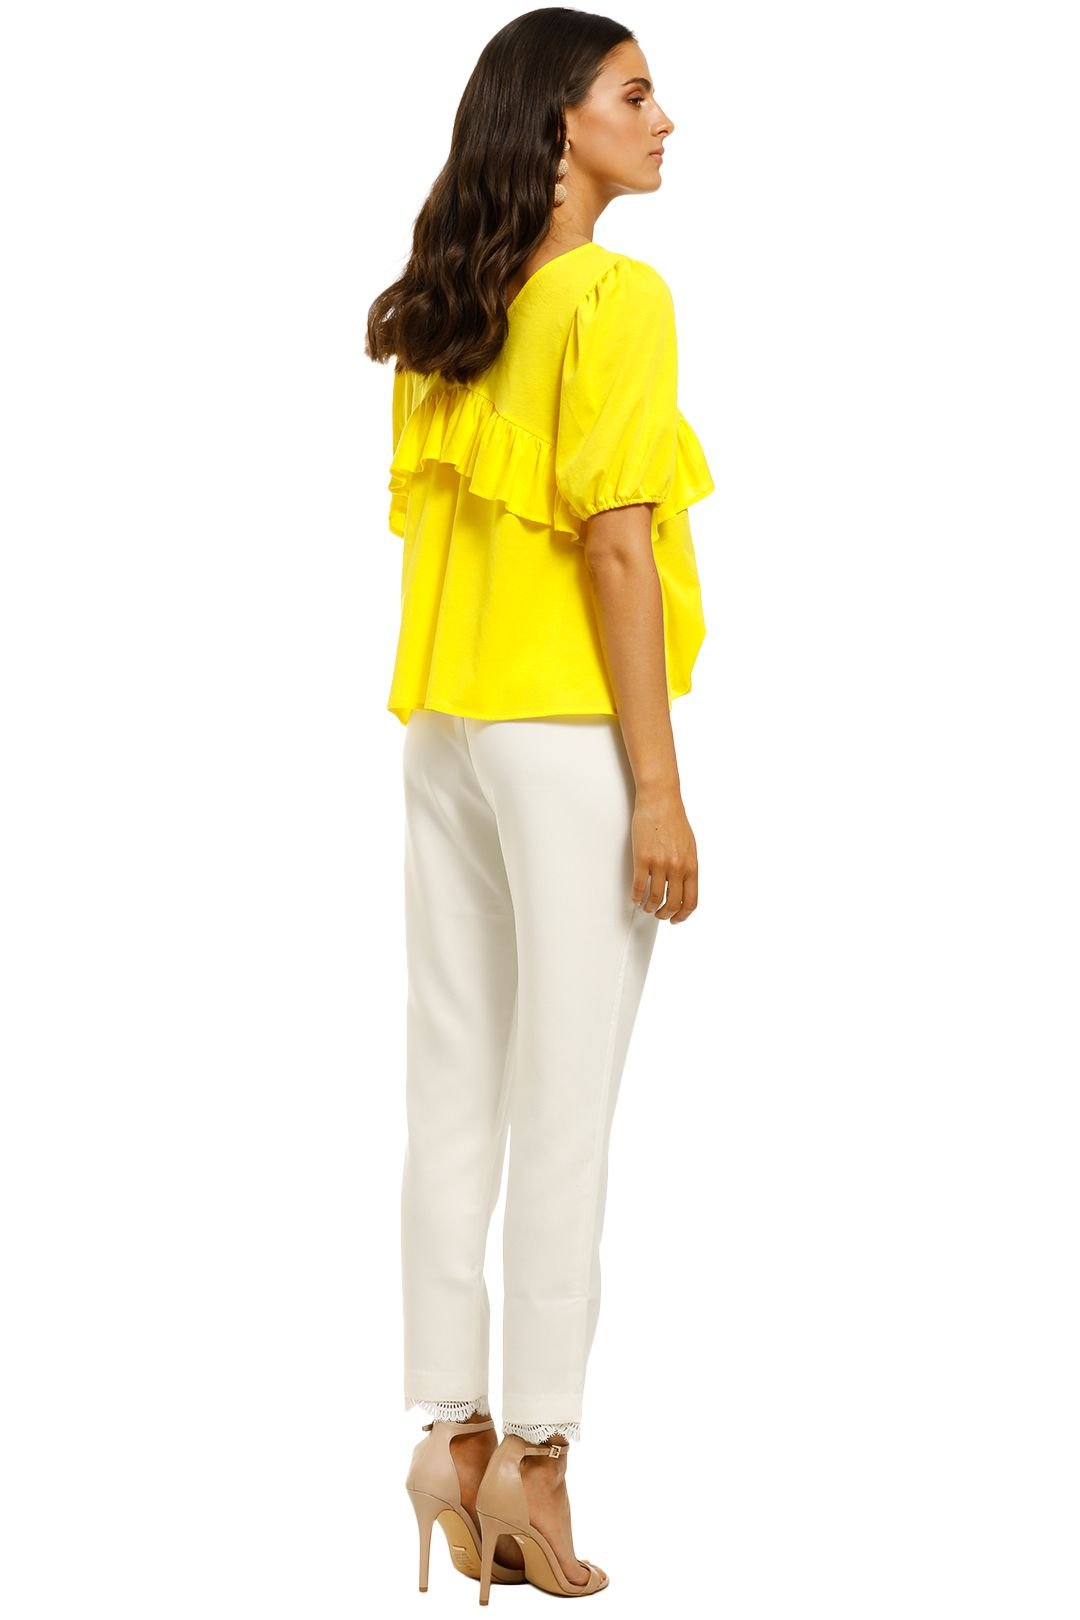 Coop-by-Trelise-Cooper-Frill-Life-Top-Yellow-Back